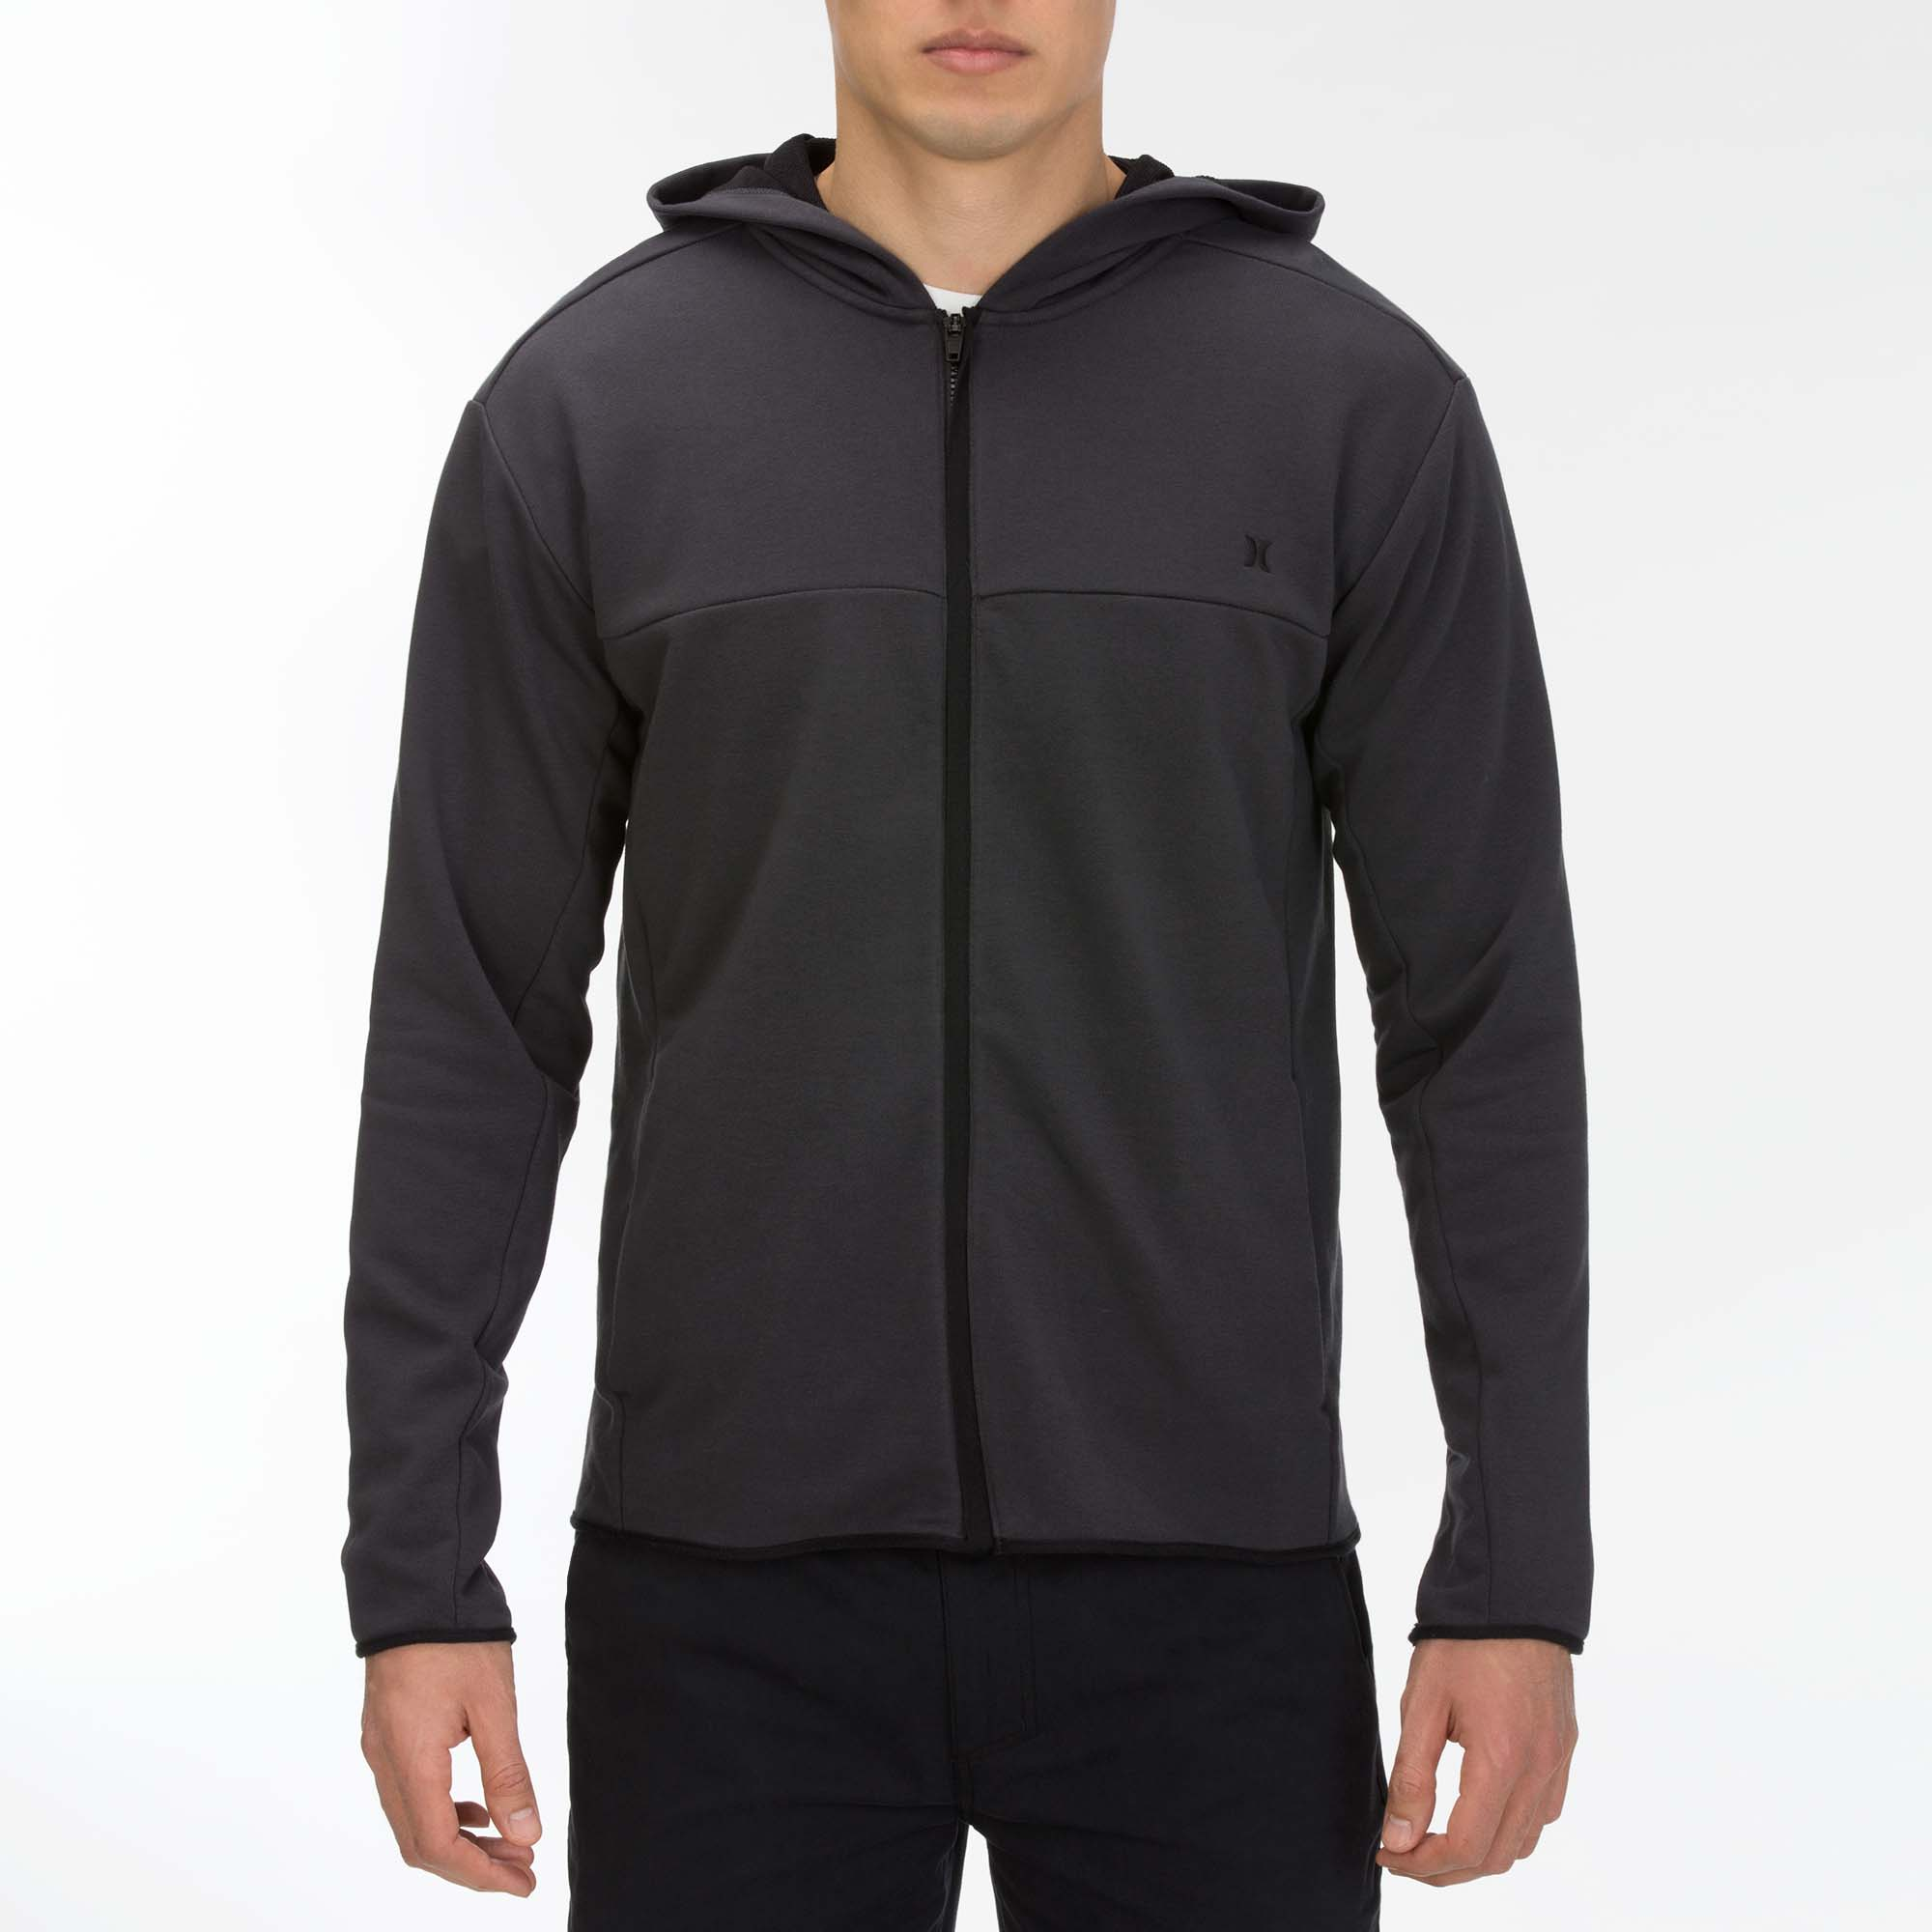 HURLEY DRI FIT NAURALS FULL ZIP